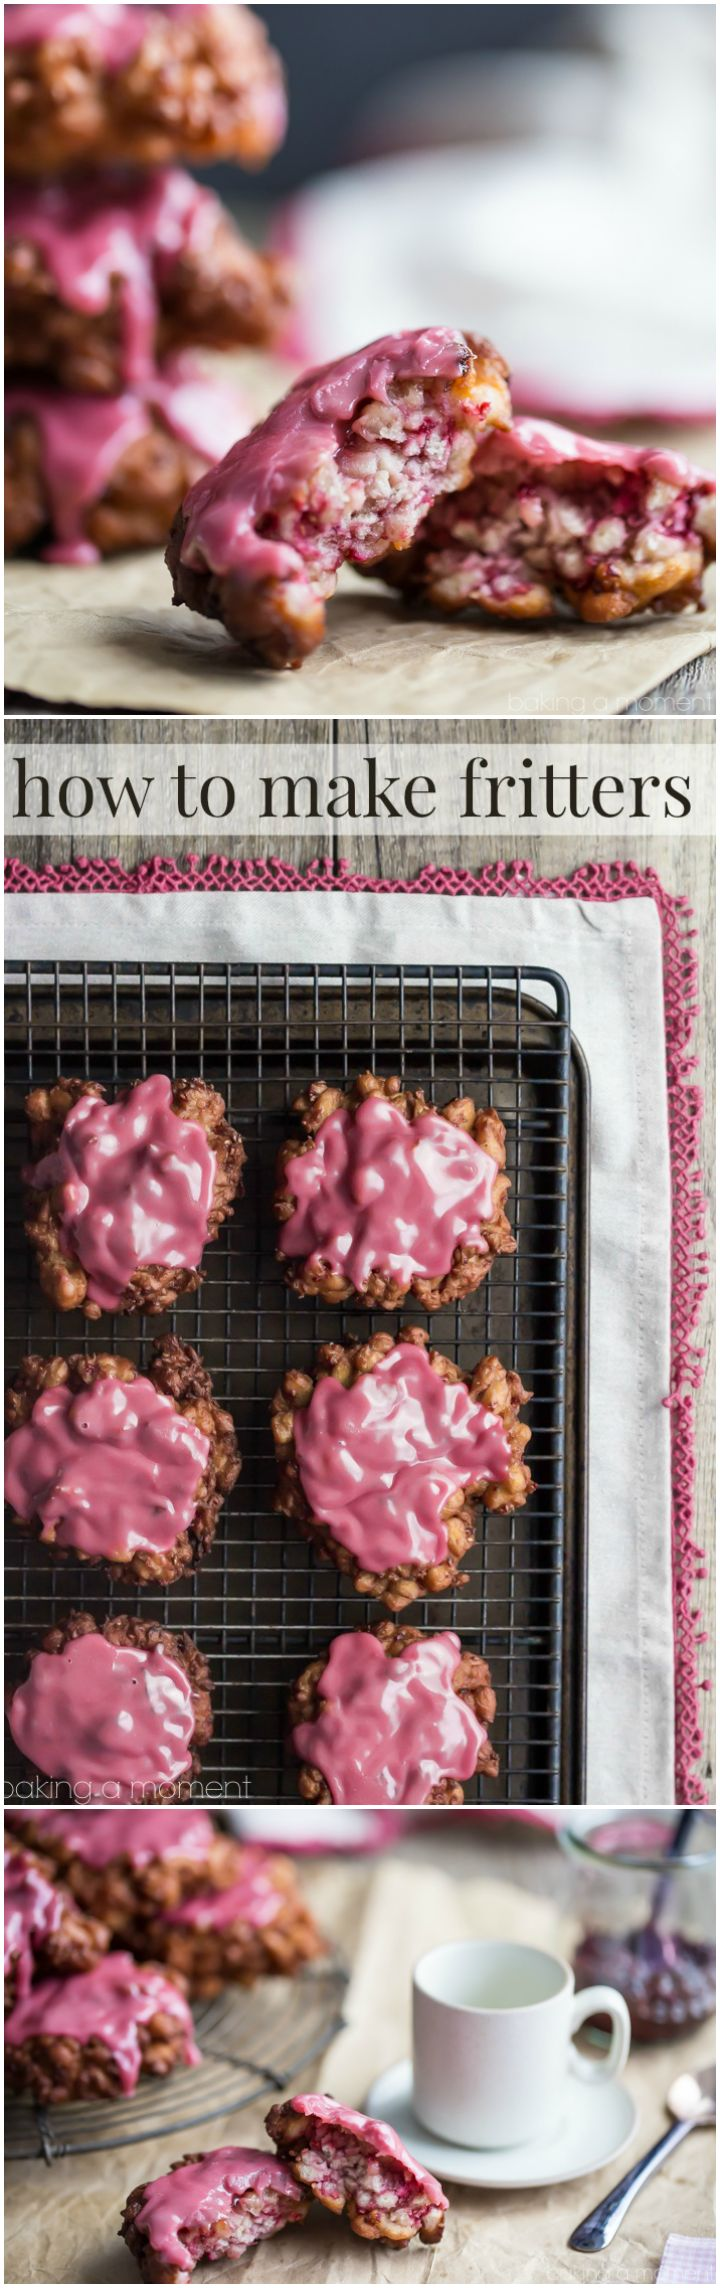 How to make fritters: I used raspberry jam in the dough and the glaze and they were amazing!